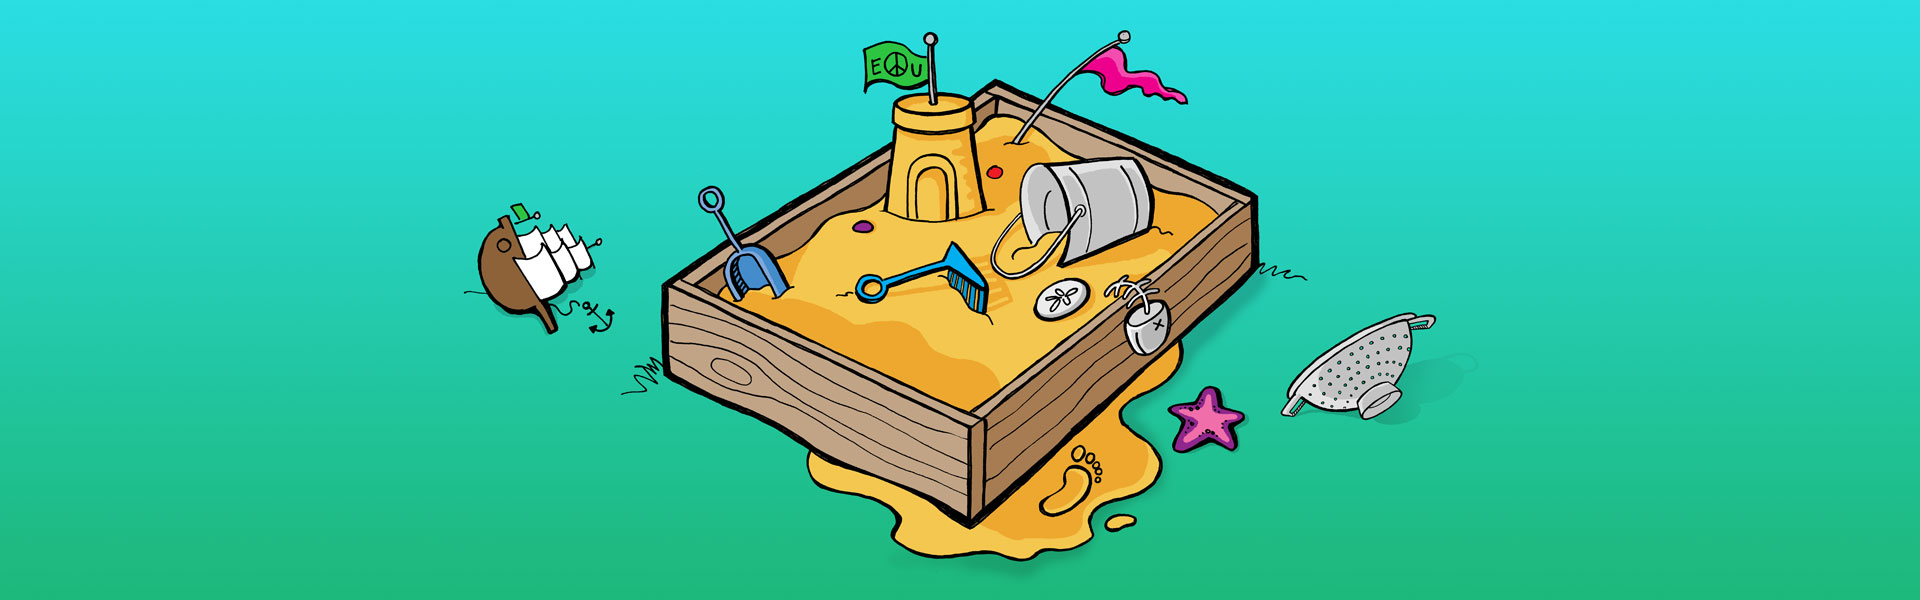 Dream it! Map it! Play it! Games to teach you how to turn dreams into reality. The sandbox where you play out your ideas to see if they work.